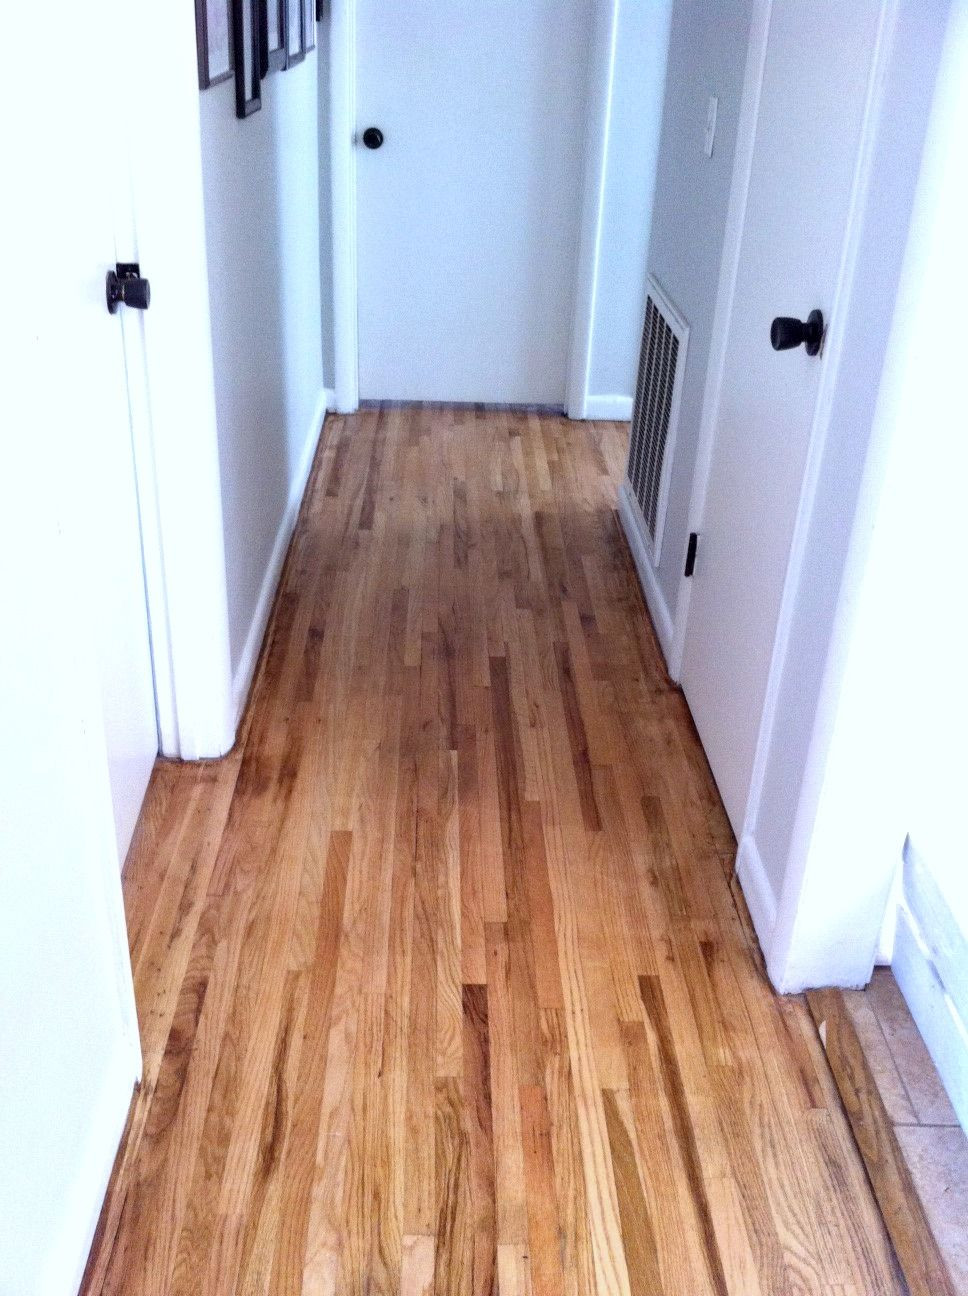 16 Spectacular How to Finish Hardwood Floors 2021 free download how to finish hardwood floors of this is what happens when you dont listen to the folks at lowes intended for refinishing hardwood floors includes price breakdown mom in music city i didnt s